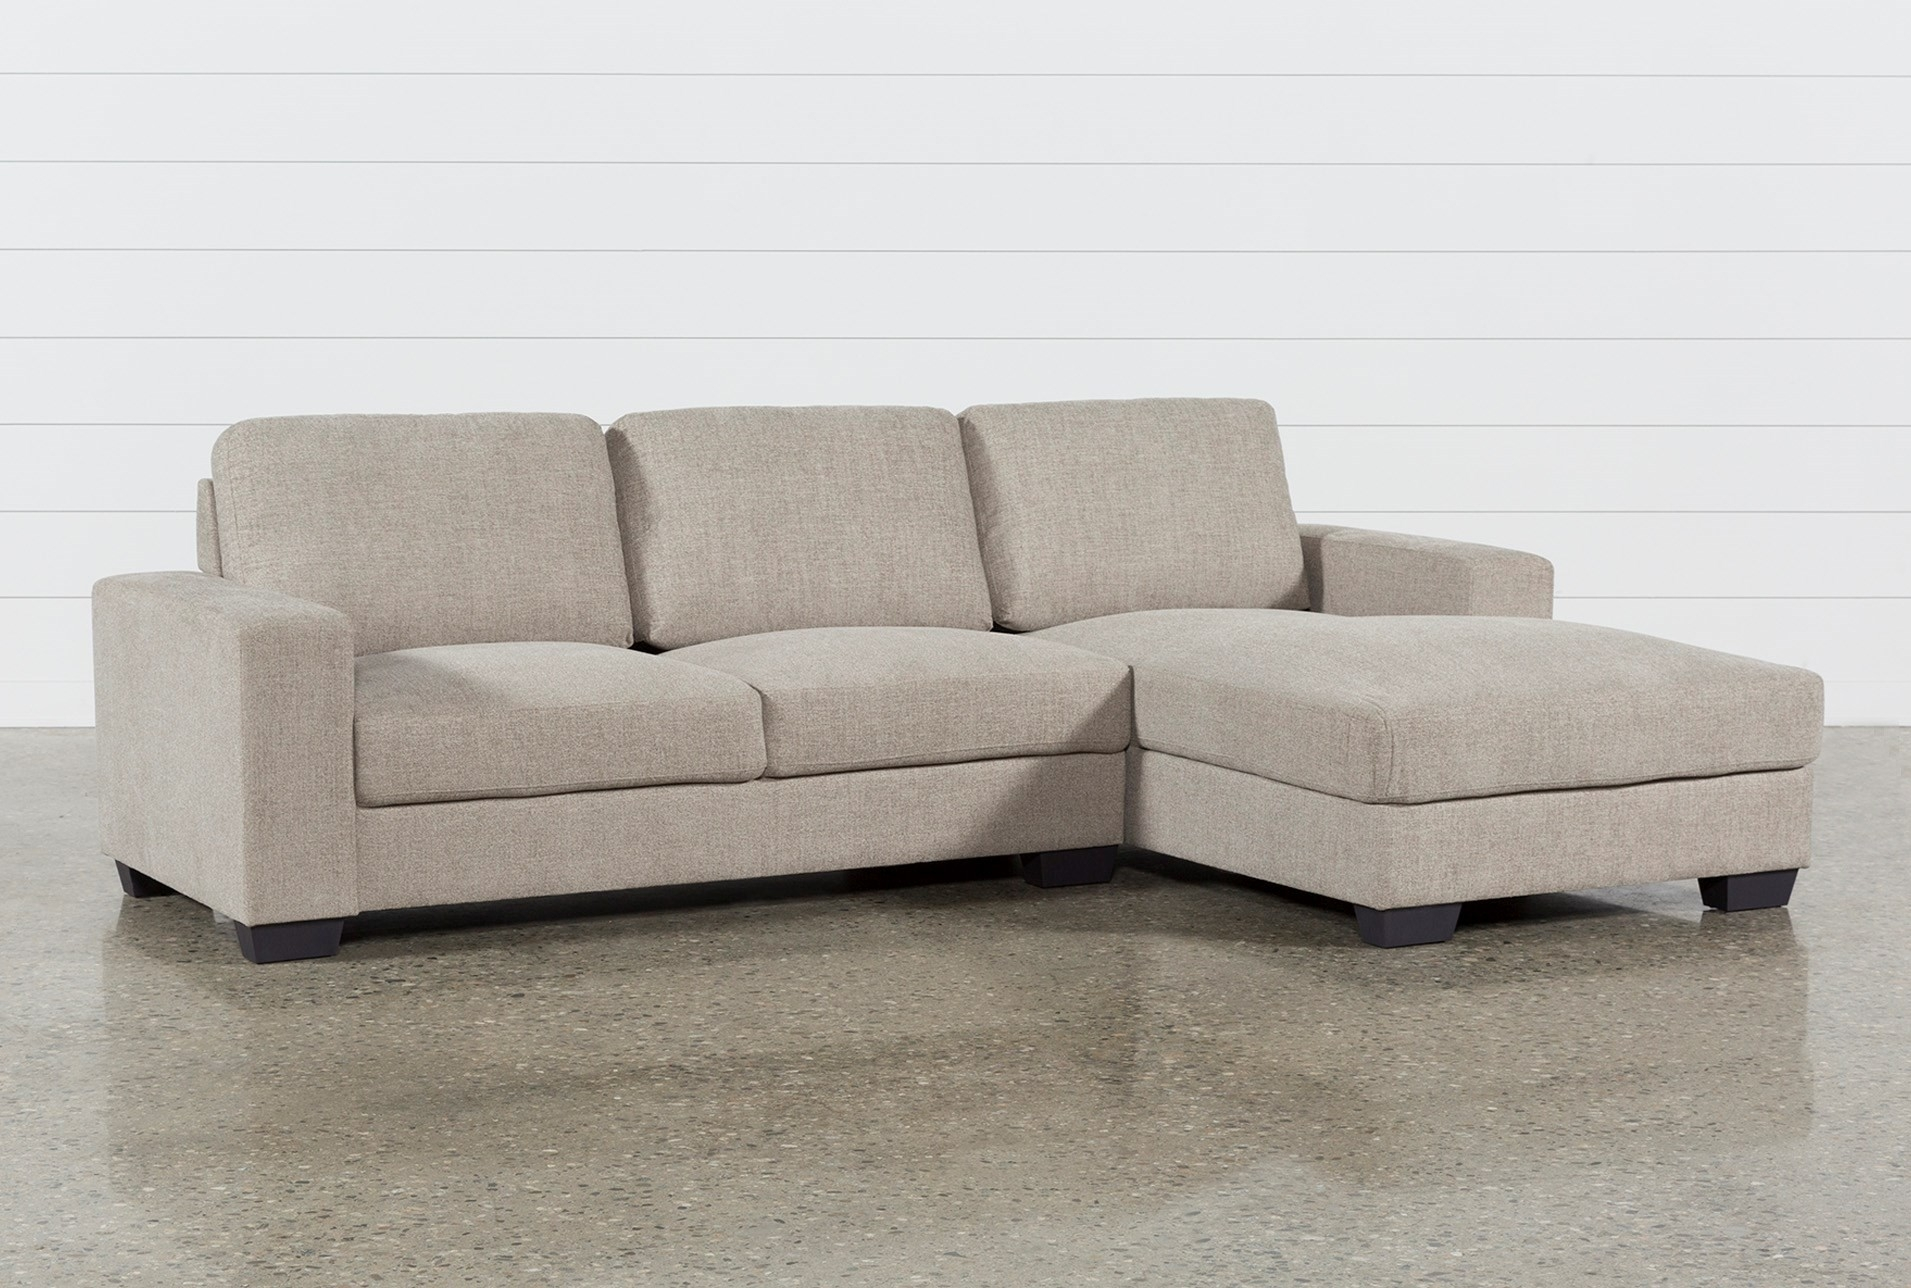 2 Piece Sectional Sofa With Chaise - Gogygames for Delano 2 Piece Sectionals With Raf Oversized Chaise